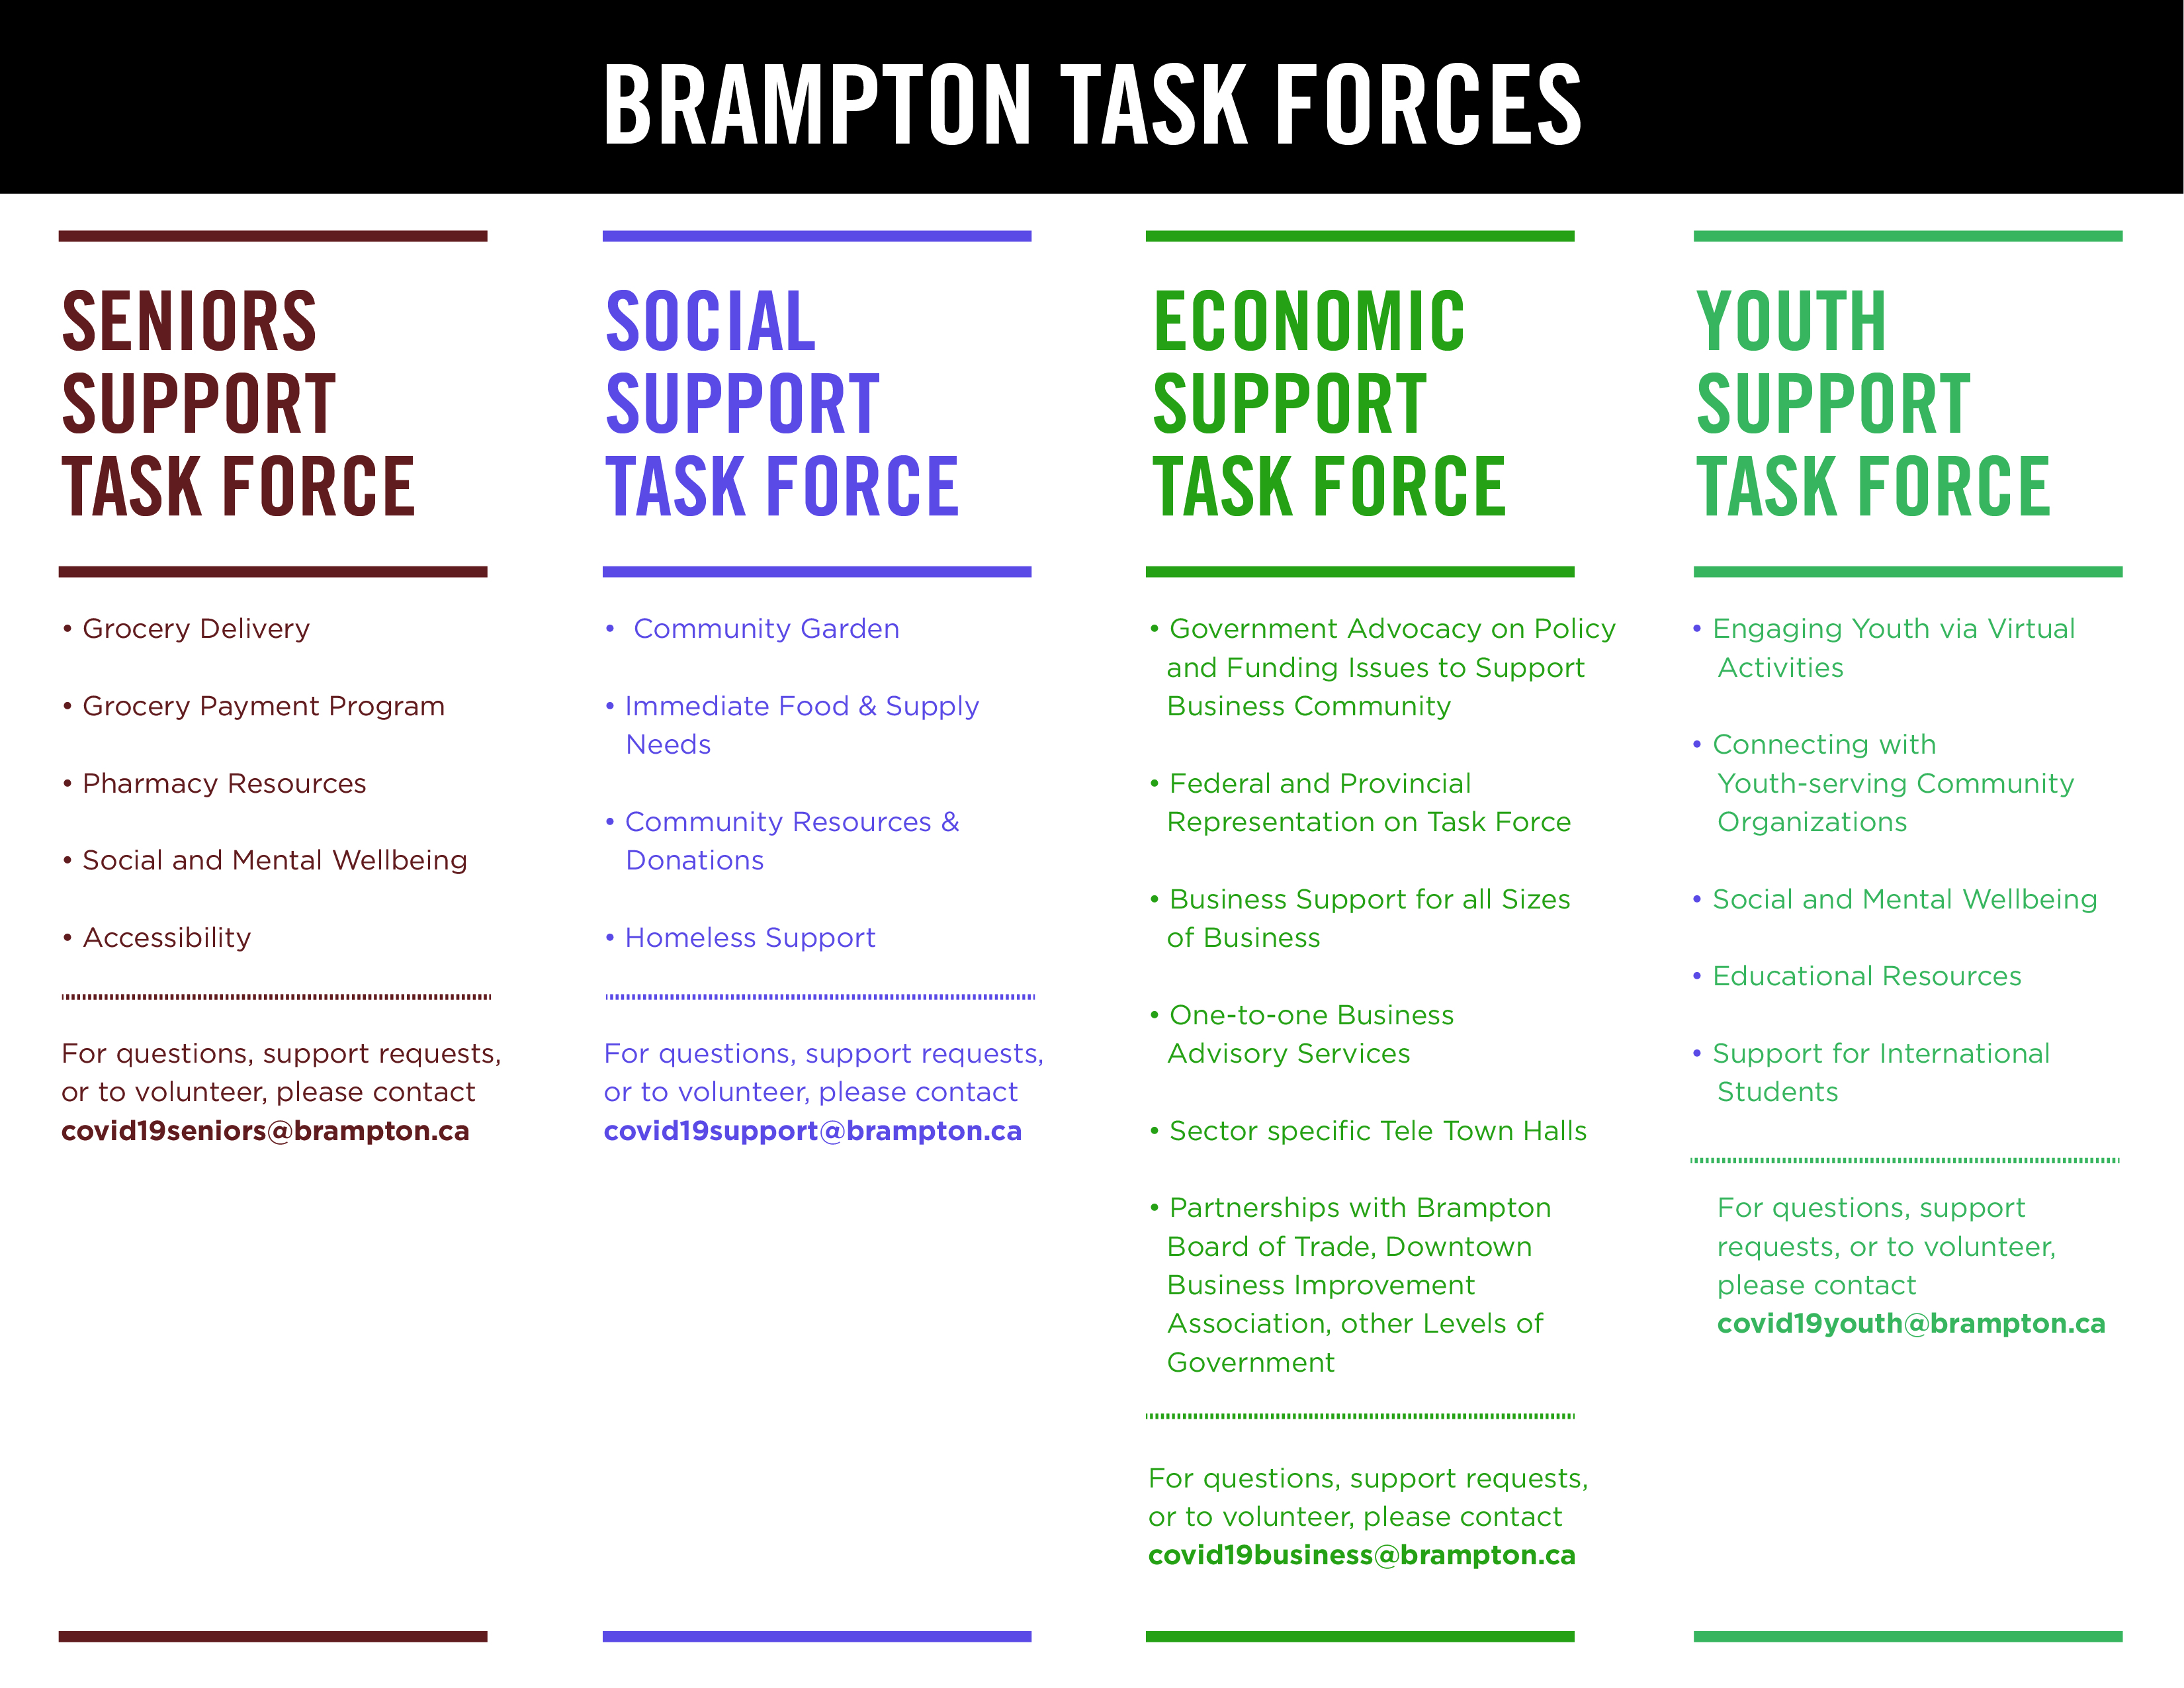 Brampton Task Forces Roles and Responsibilities